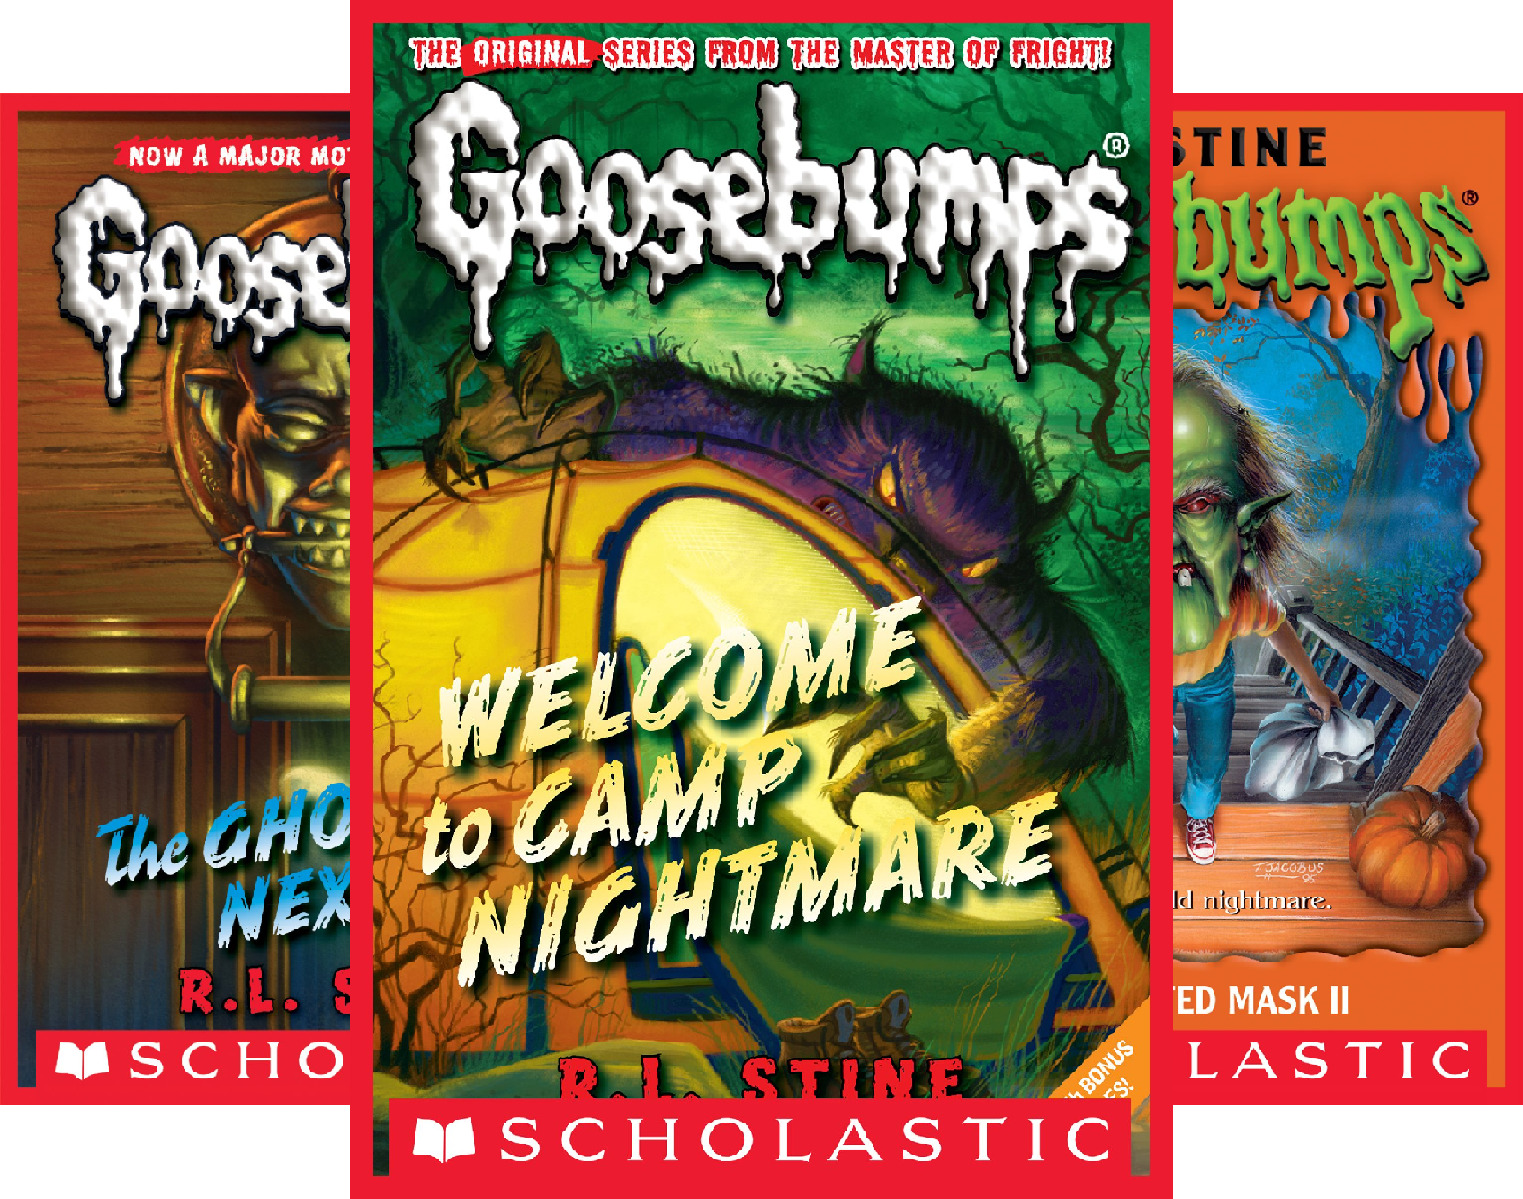 Goosebumps Boxed Set, Books 9-12: Welcome to Camp Nightmare, The Ghost Next Door, The Haunted Mask, and Be Careful What You Wish For (4 Book Series)